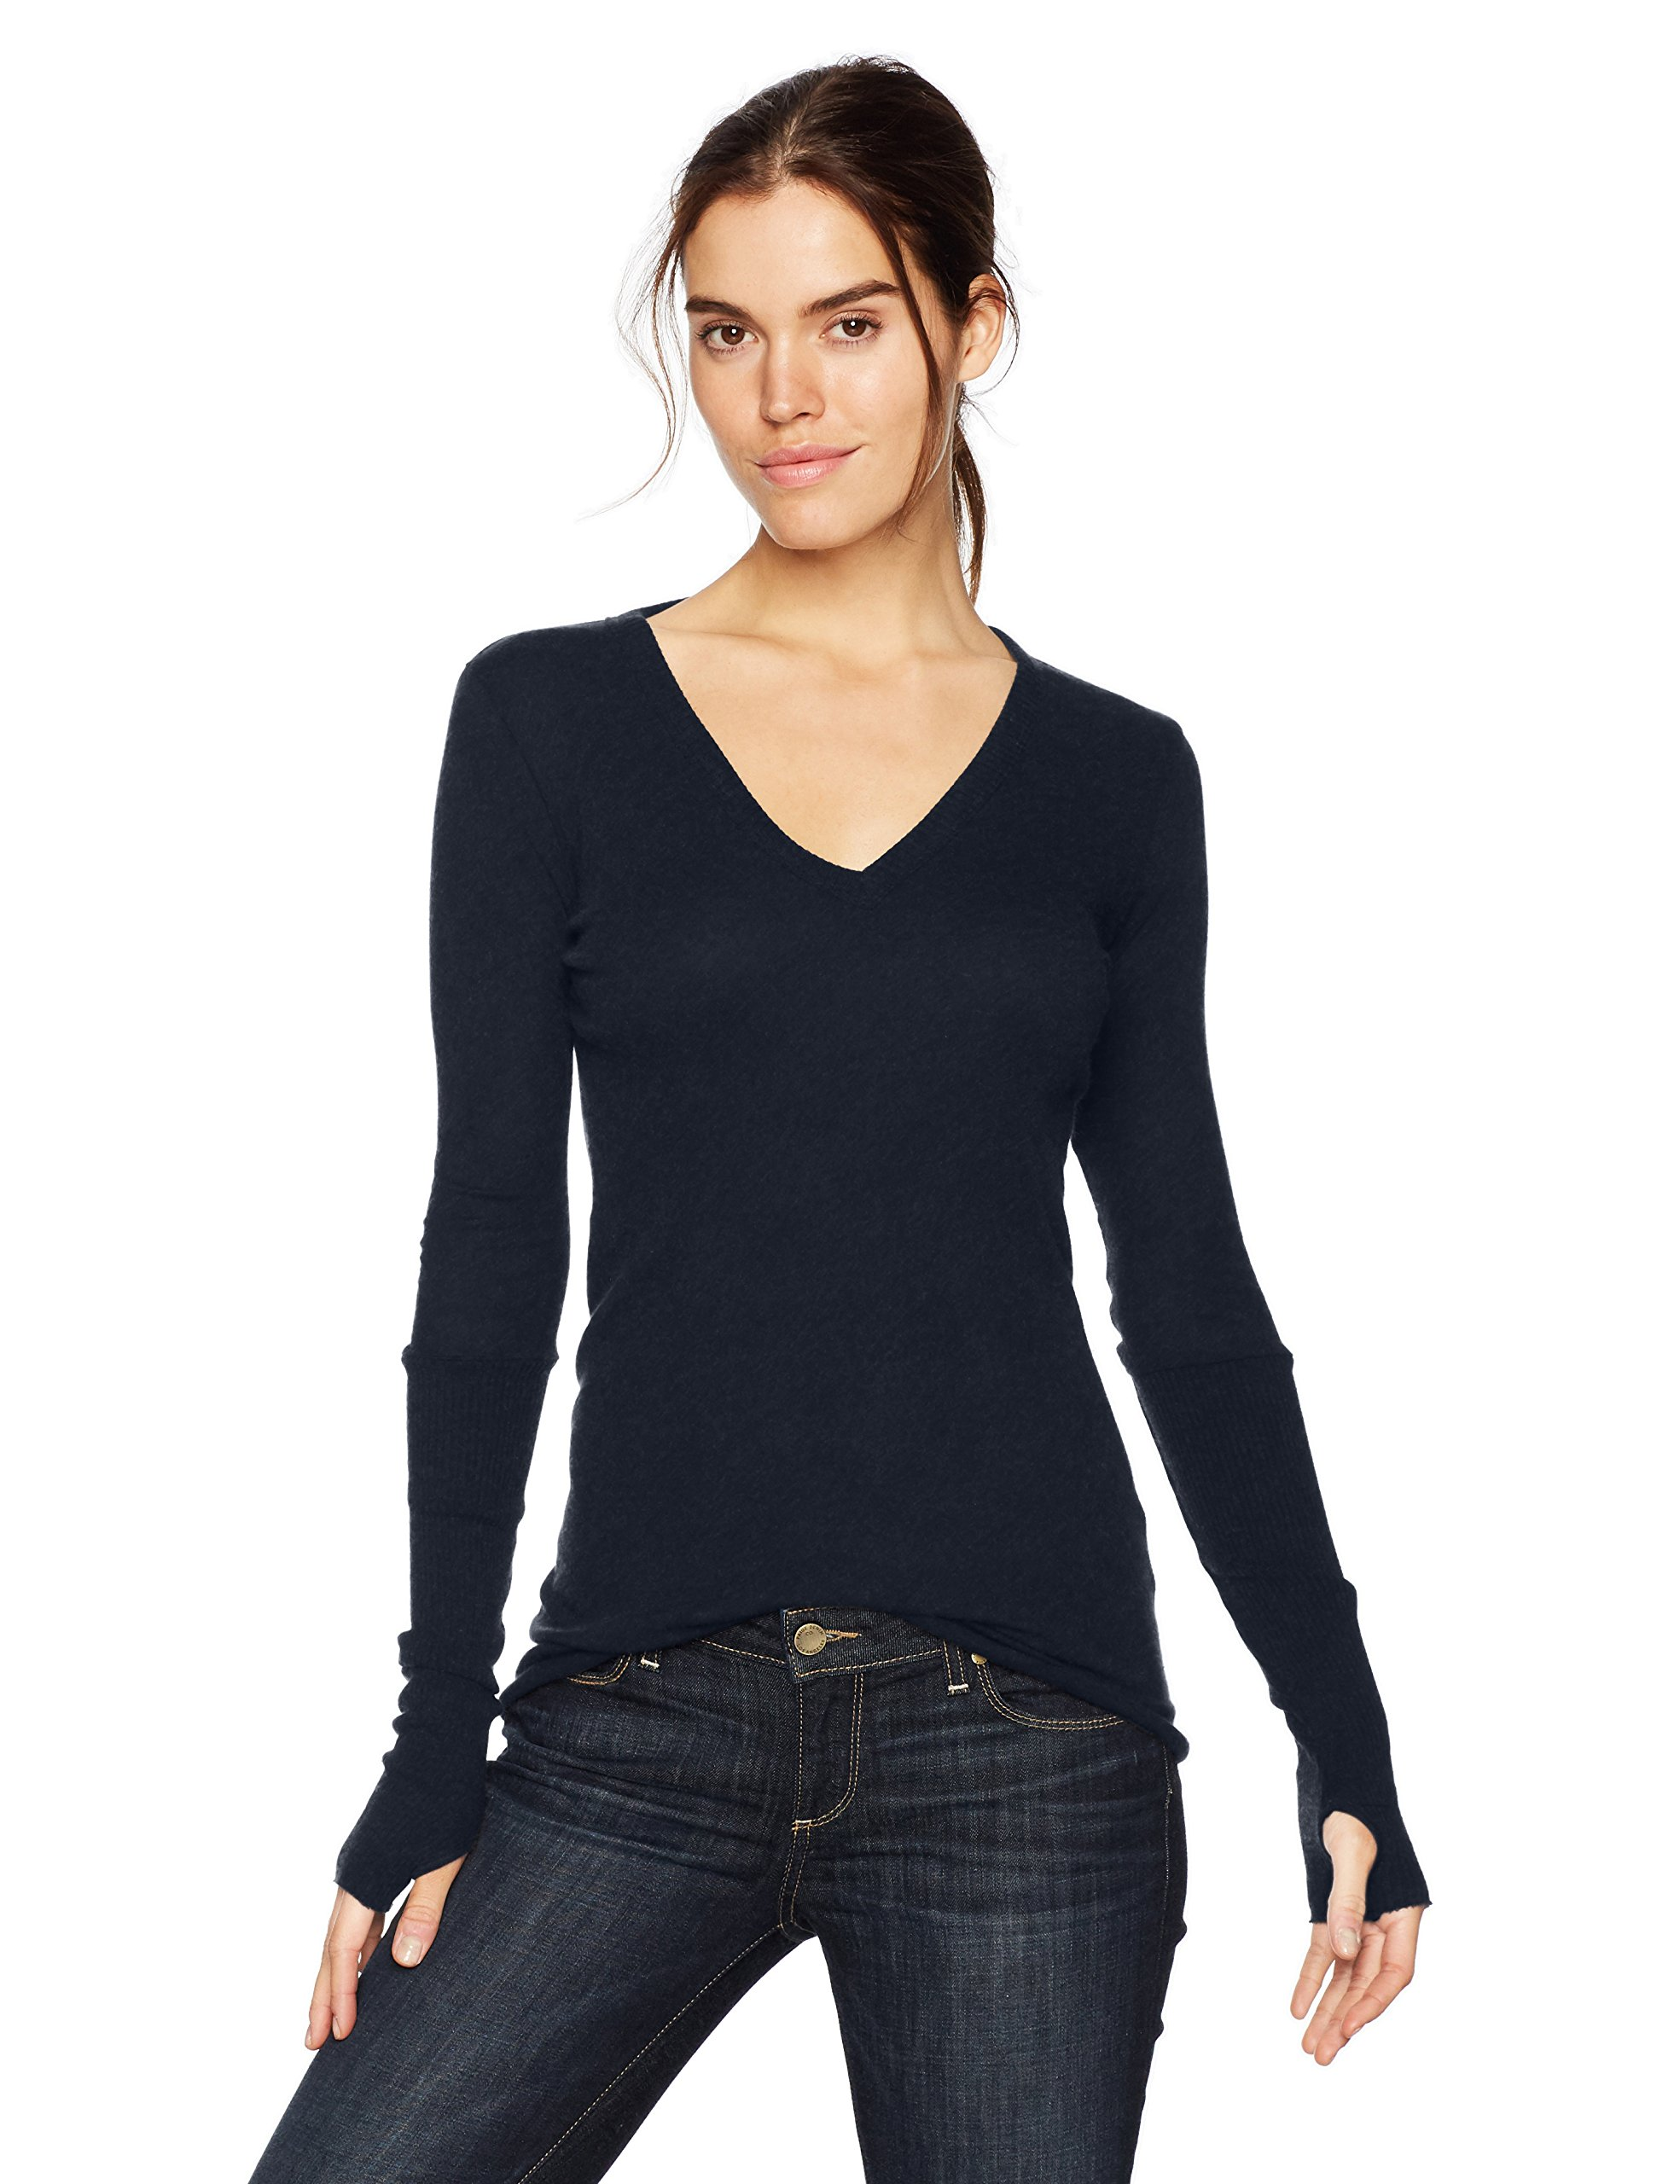 Enza Costa Women's Cashmere Long Sleeve Cuffed V-Neck Top With Thumbhole, Cadet, M